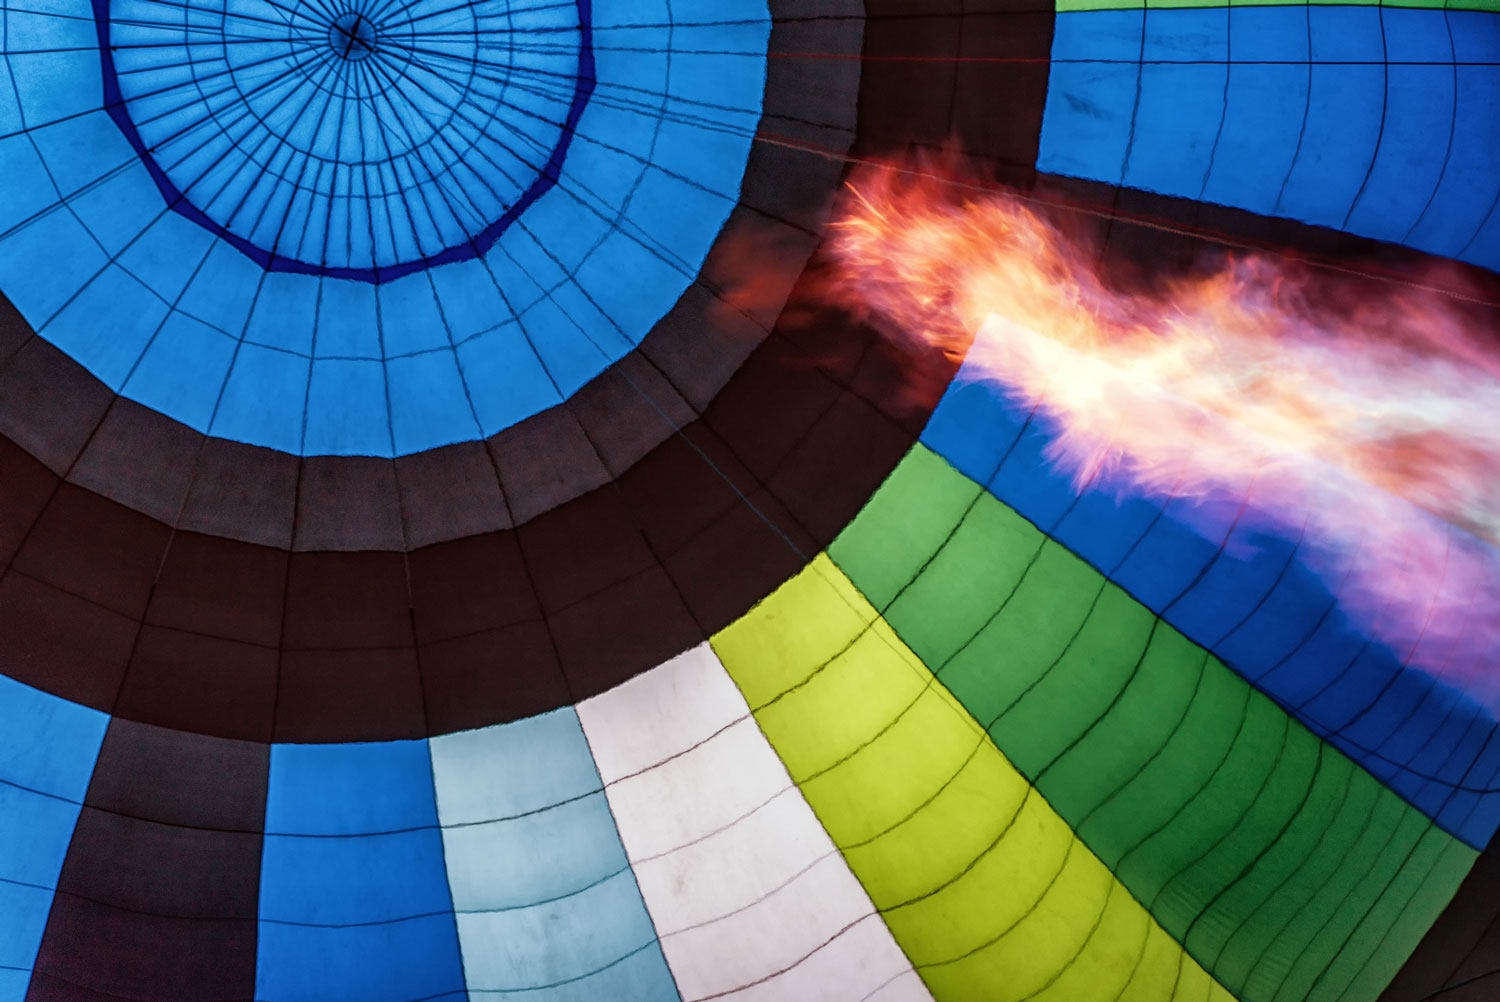 Hot air balloon with huge flame in foreground